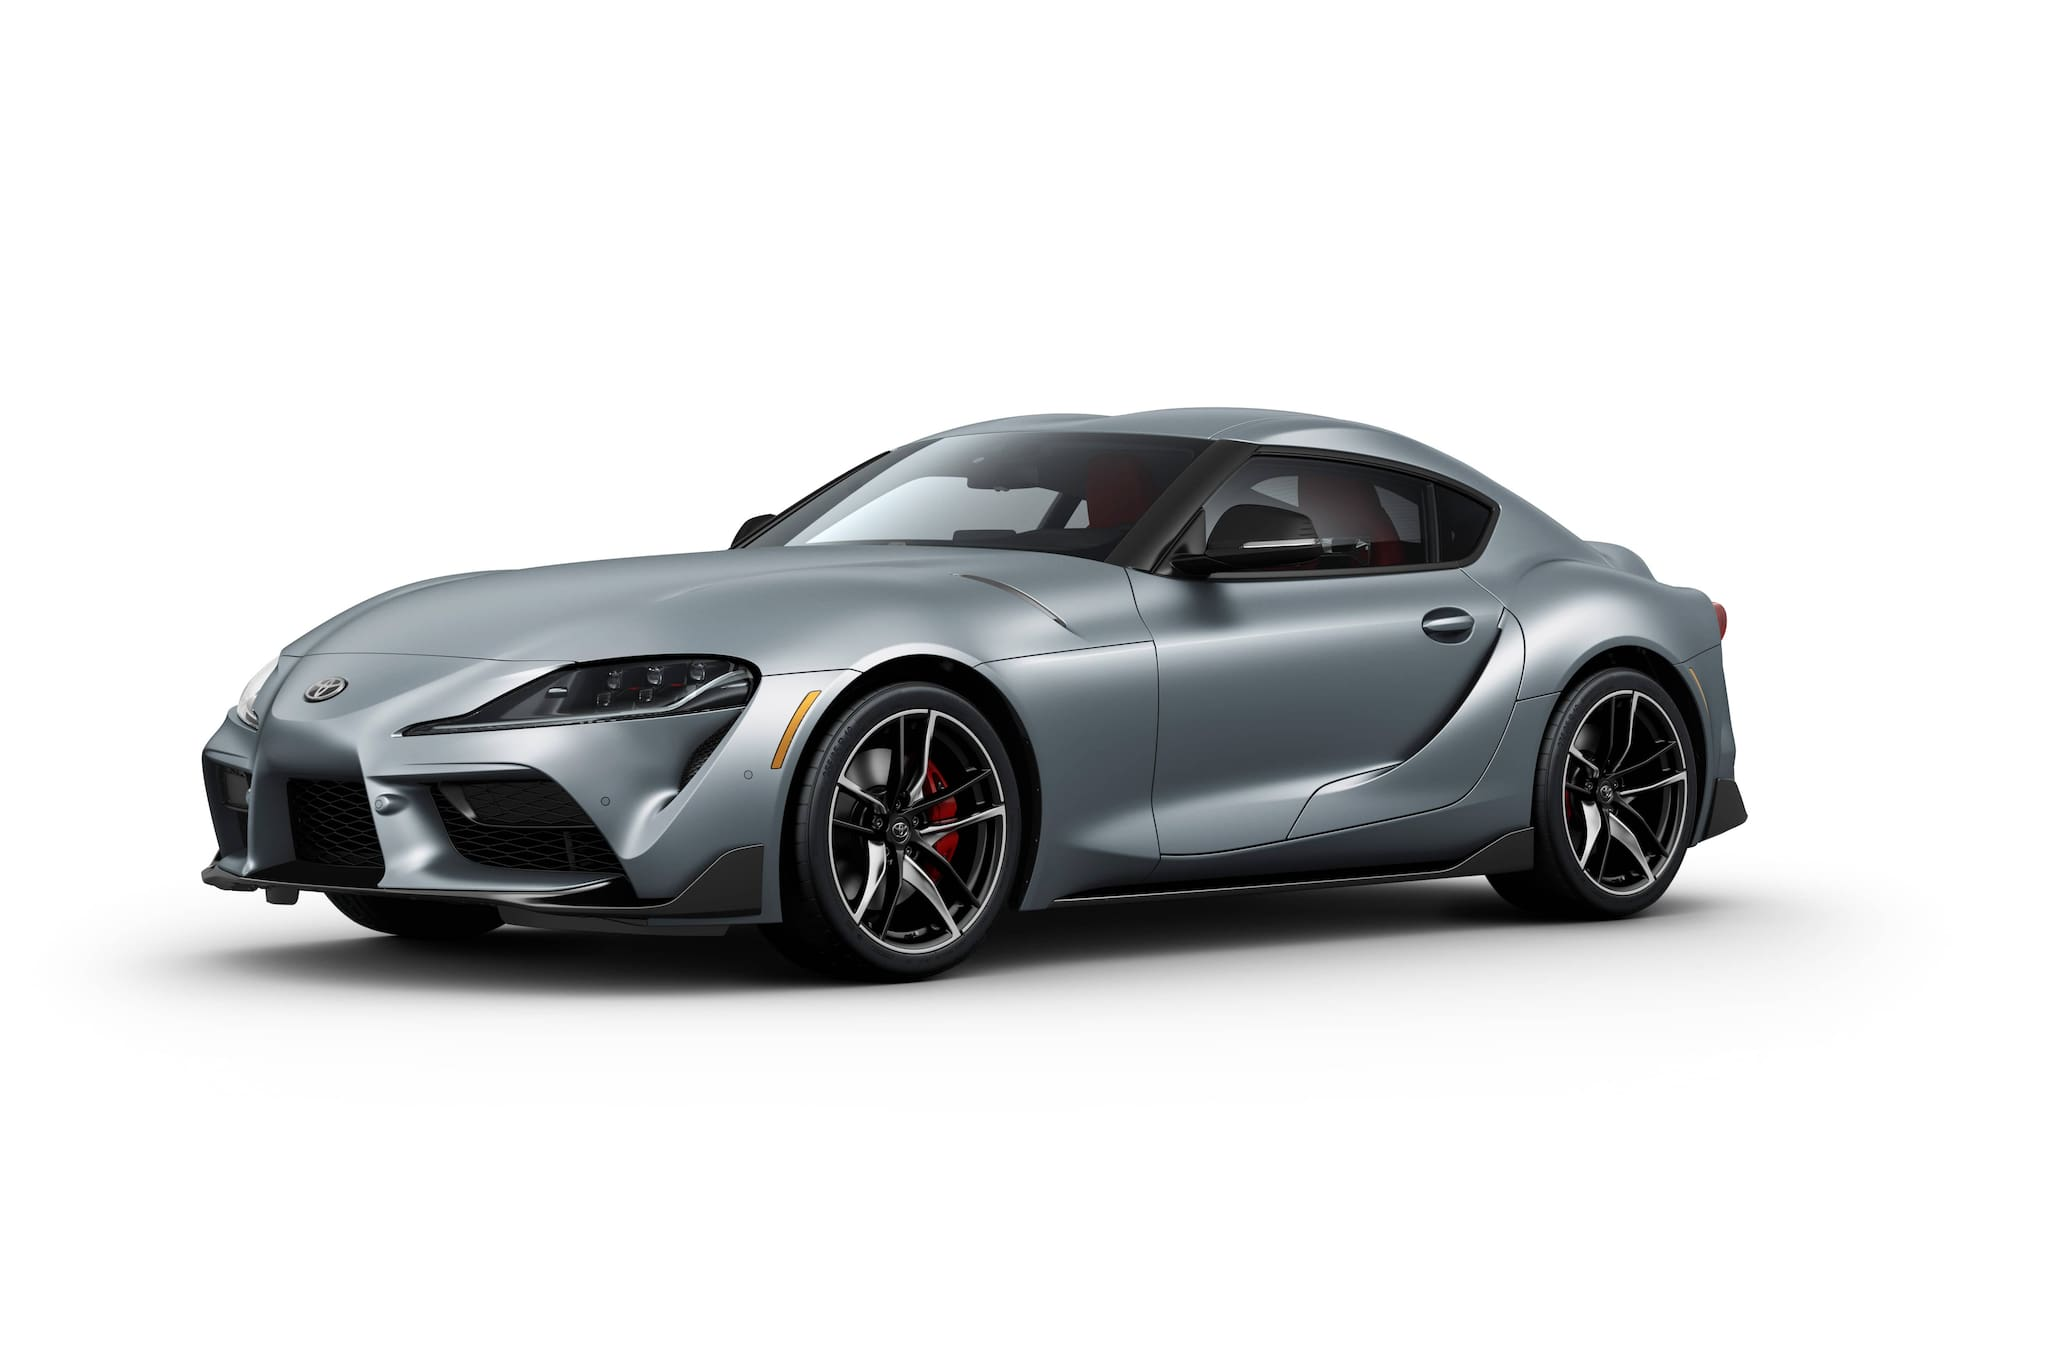 Can Toyota Interest You in a Four-Cylinder Toyota Supra?